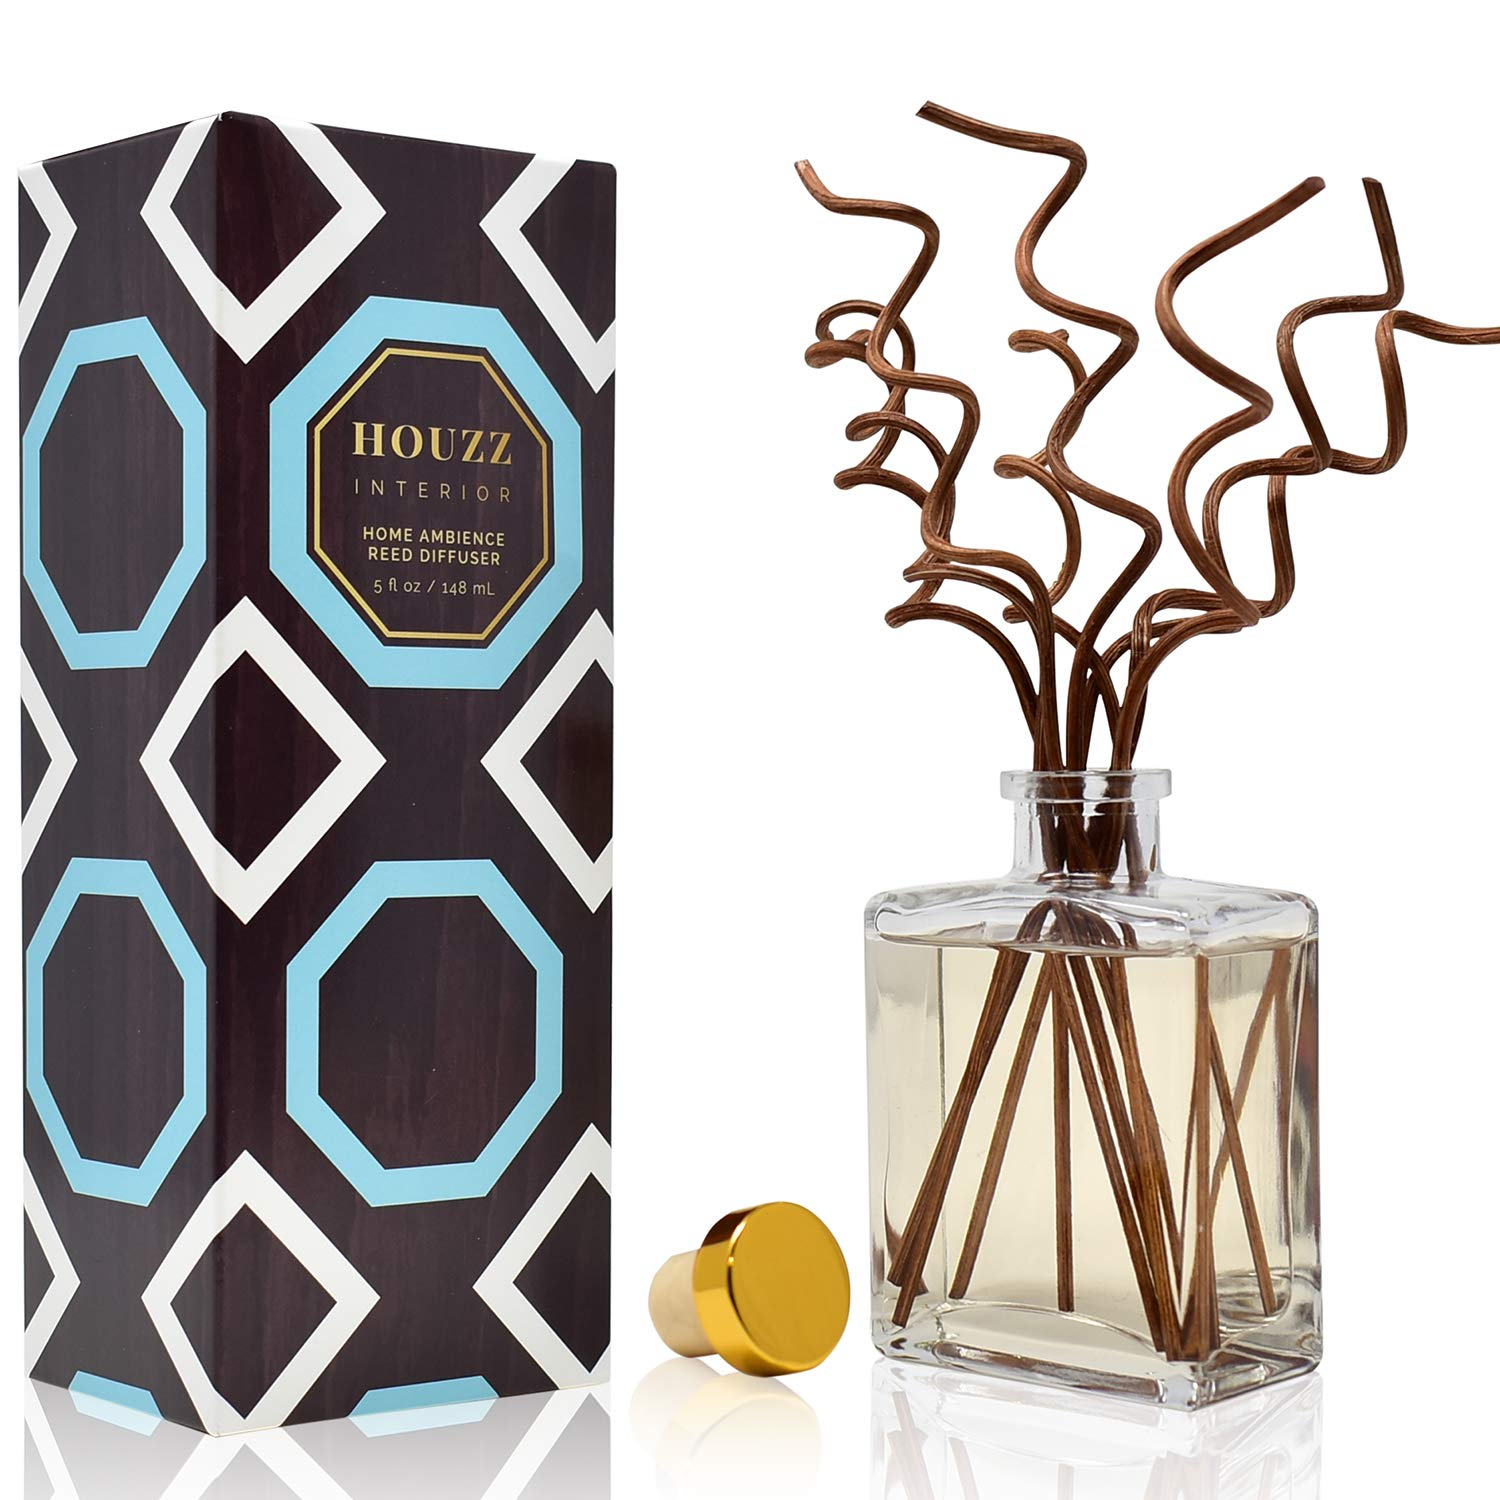 HOUZZ Interior Lemon Verbena Essential Oil Reed Diffuser - Lemon Zest and Verbena Blossoms Blended with Vetiver and Natural Lemongrass - Great Housewarming Gift Idea by HOUZZ Interior (Image #1)